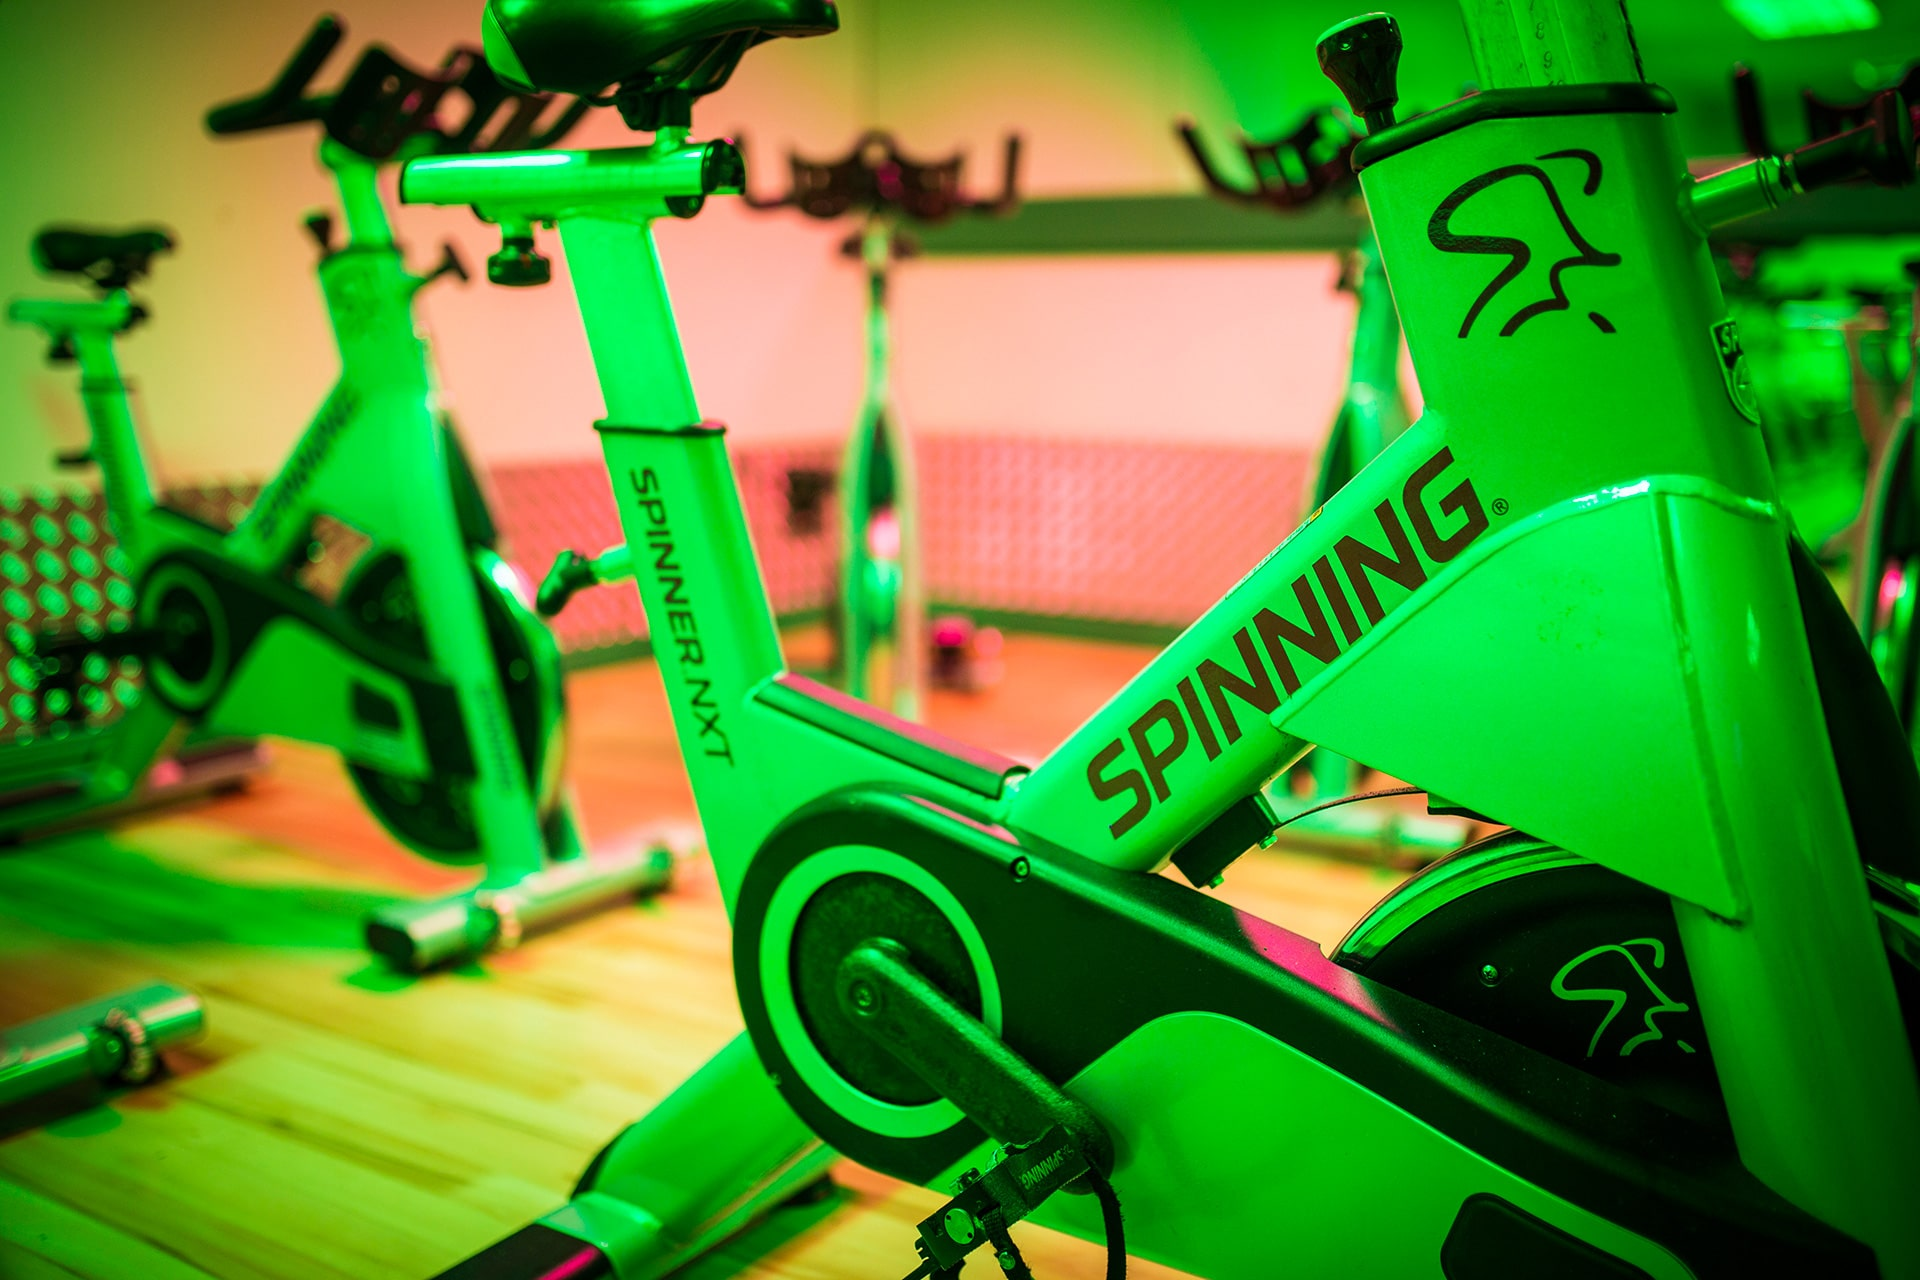 Riverside Sports & Leisure Club Bristol - spin cycling studio